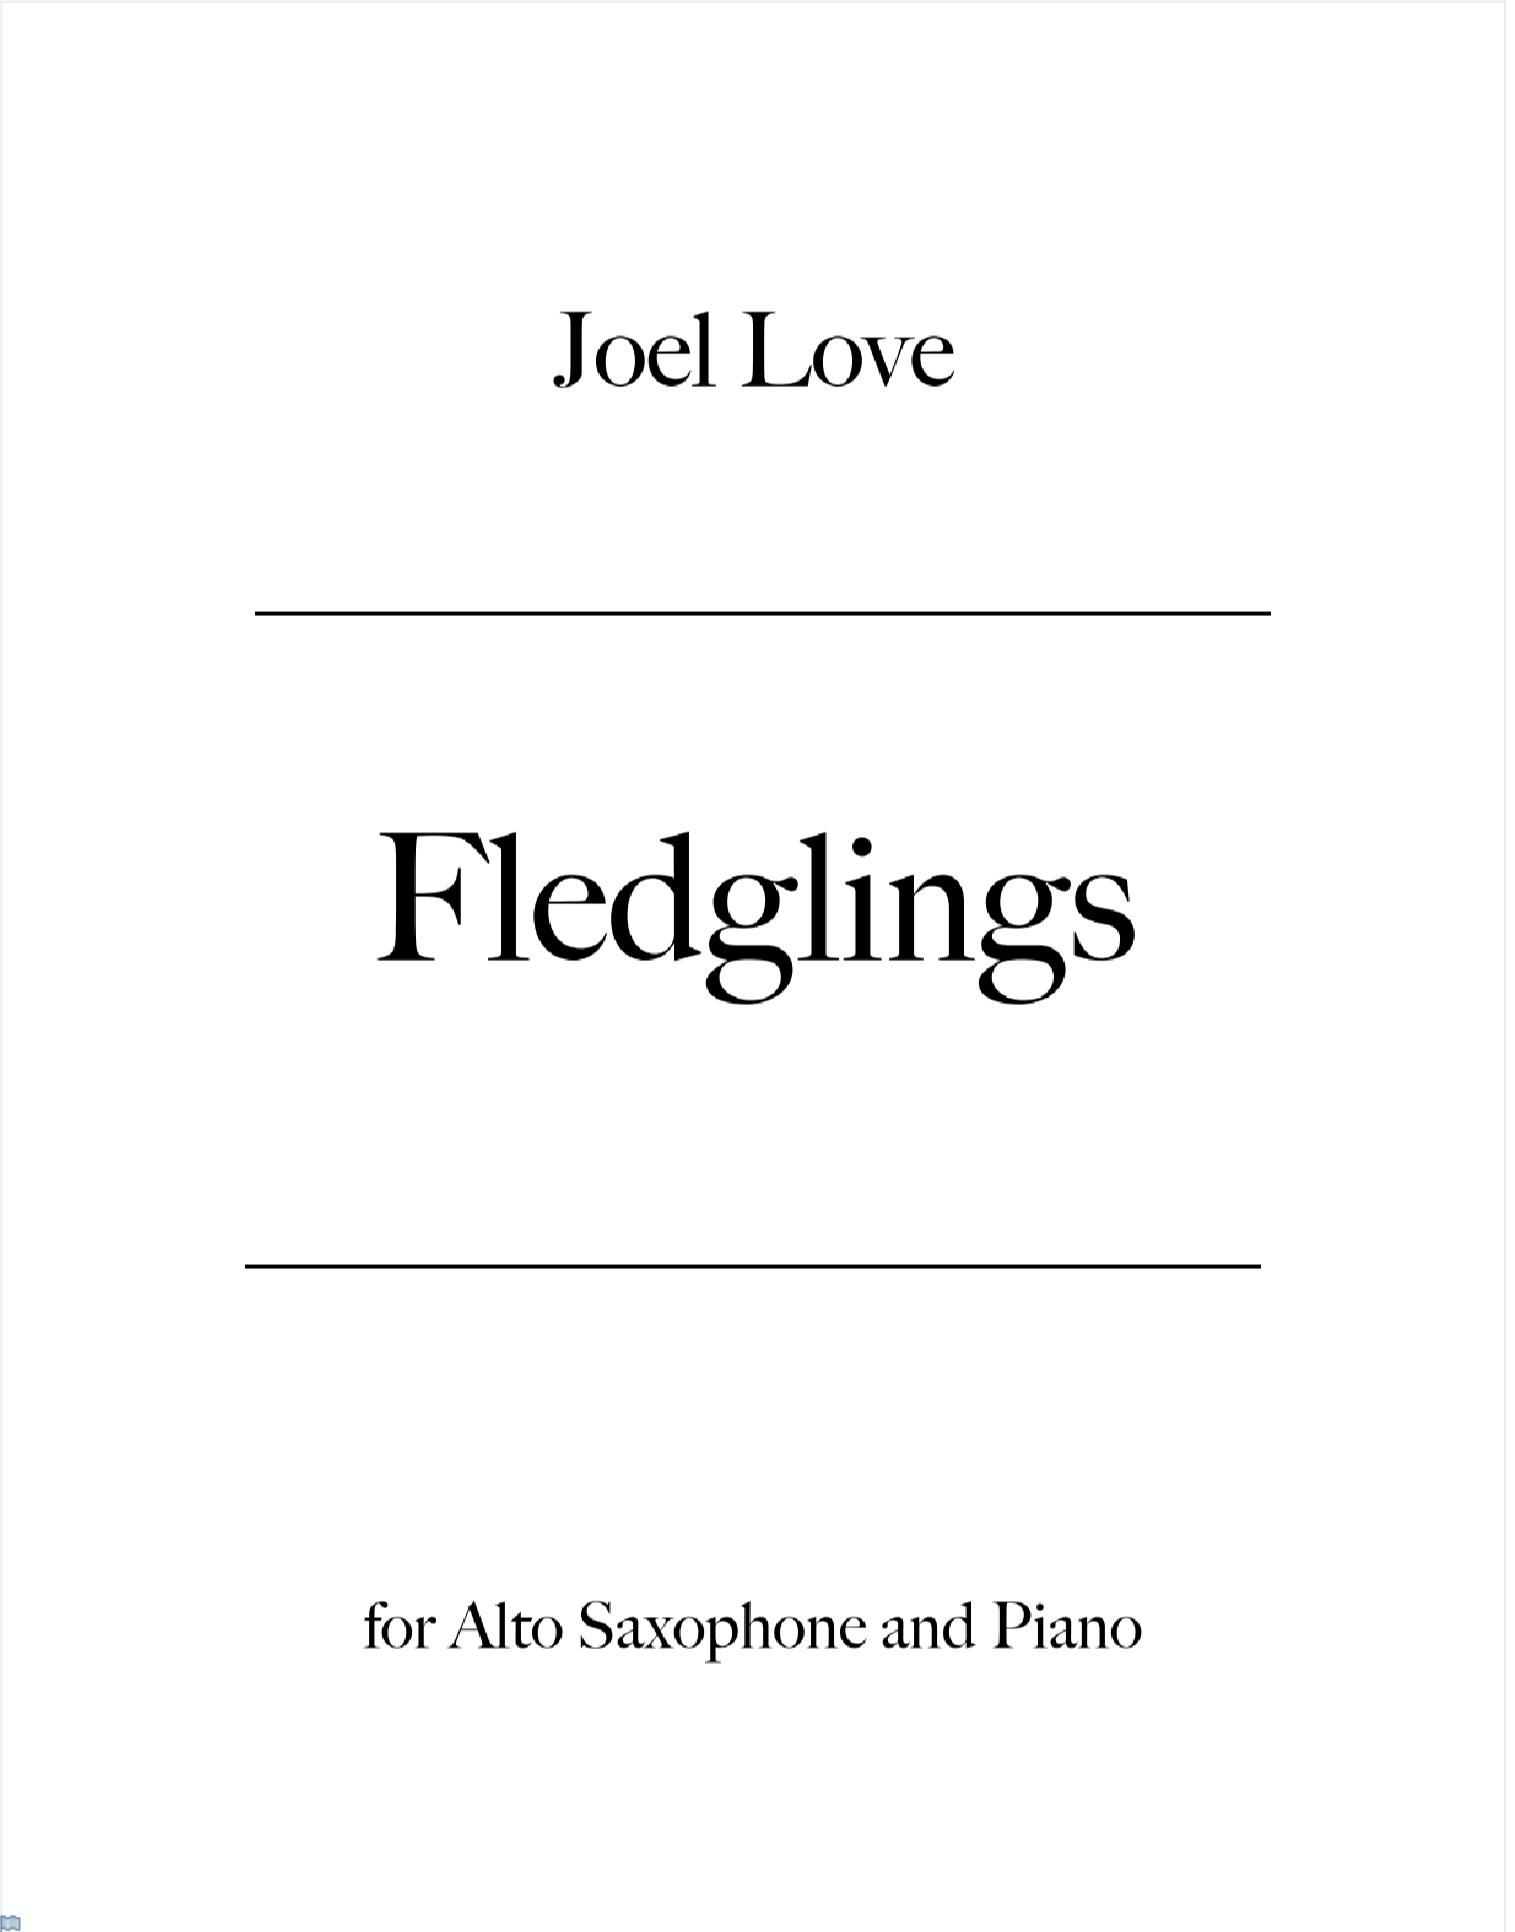 Fledglings by Joel Love